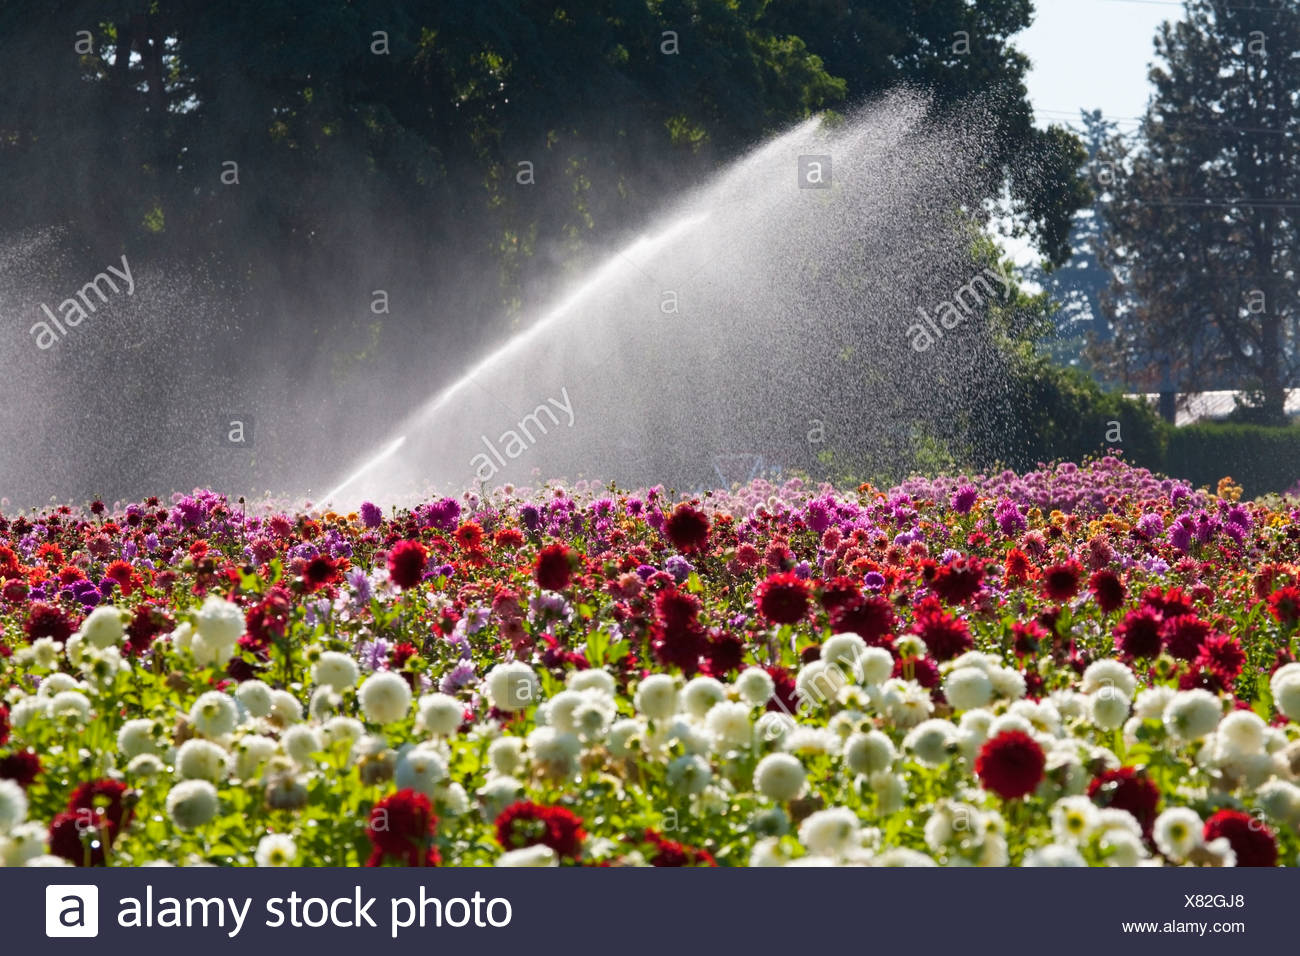 Willamette Valley, Oregon, United States Of America; Water Spraying From A Sprinkler Over The Dahlia Field - Stock Image